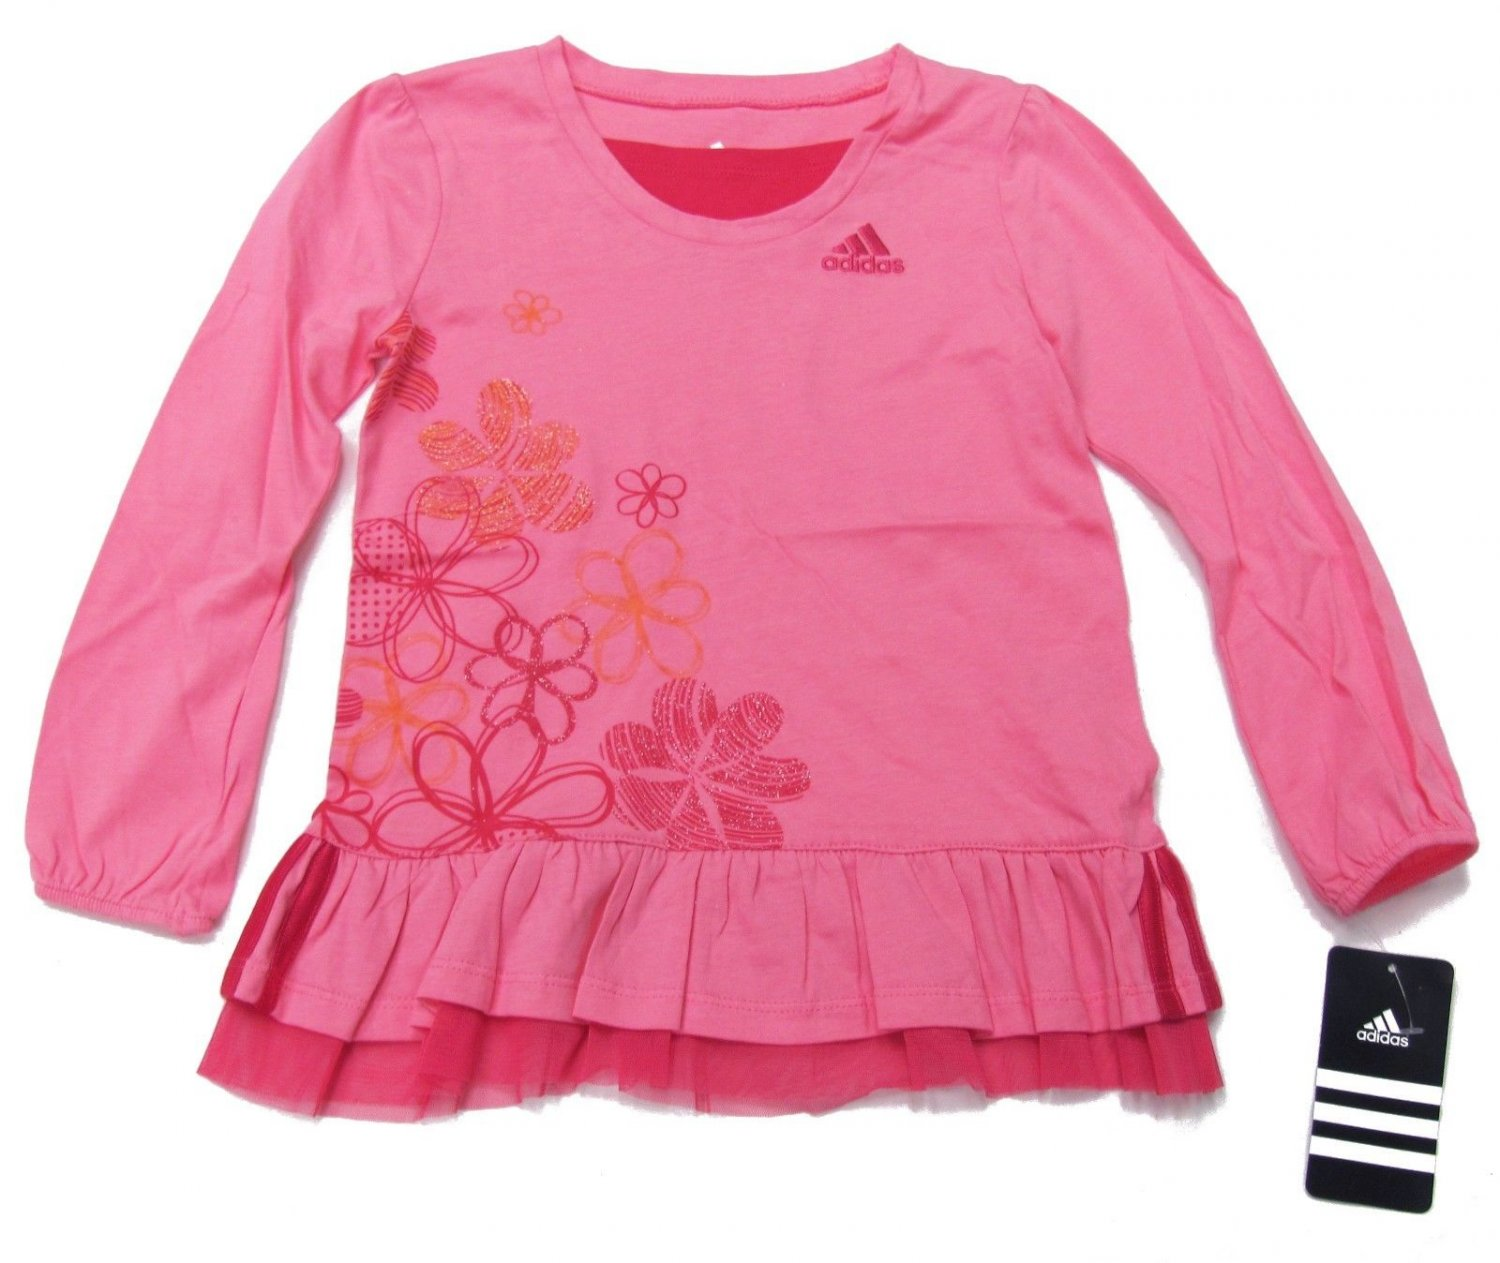 adidas Girls size 4 Shirt Pink Ruffle Bottom Sport Top with Glitter Flowers Long Sleeve